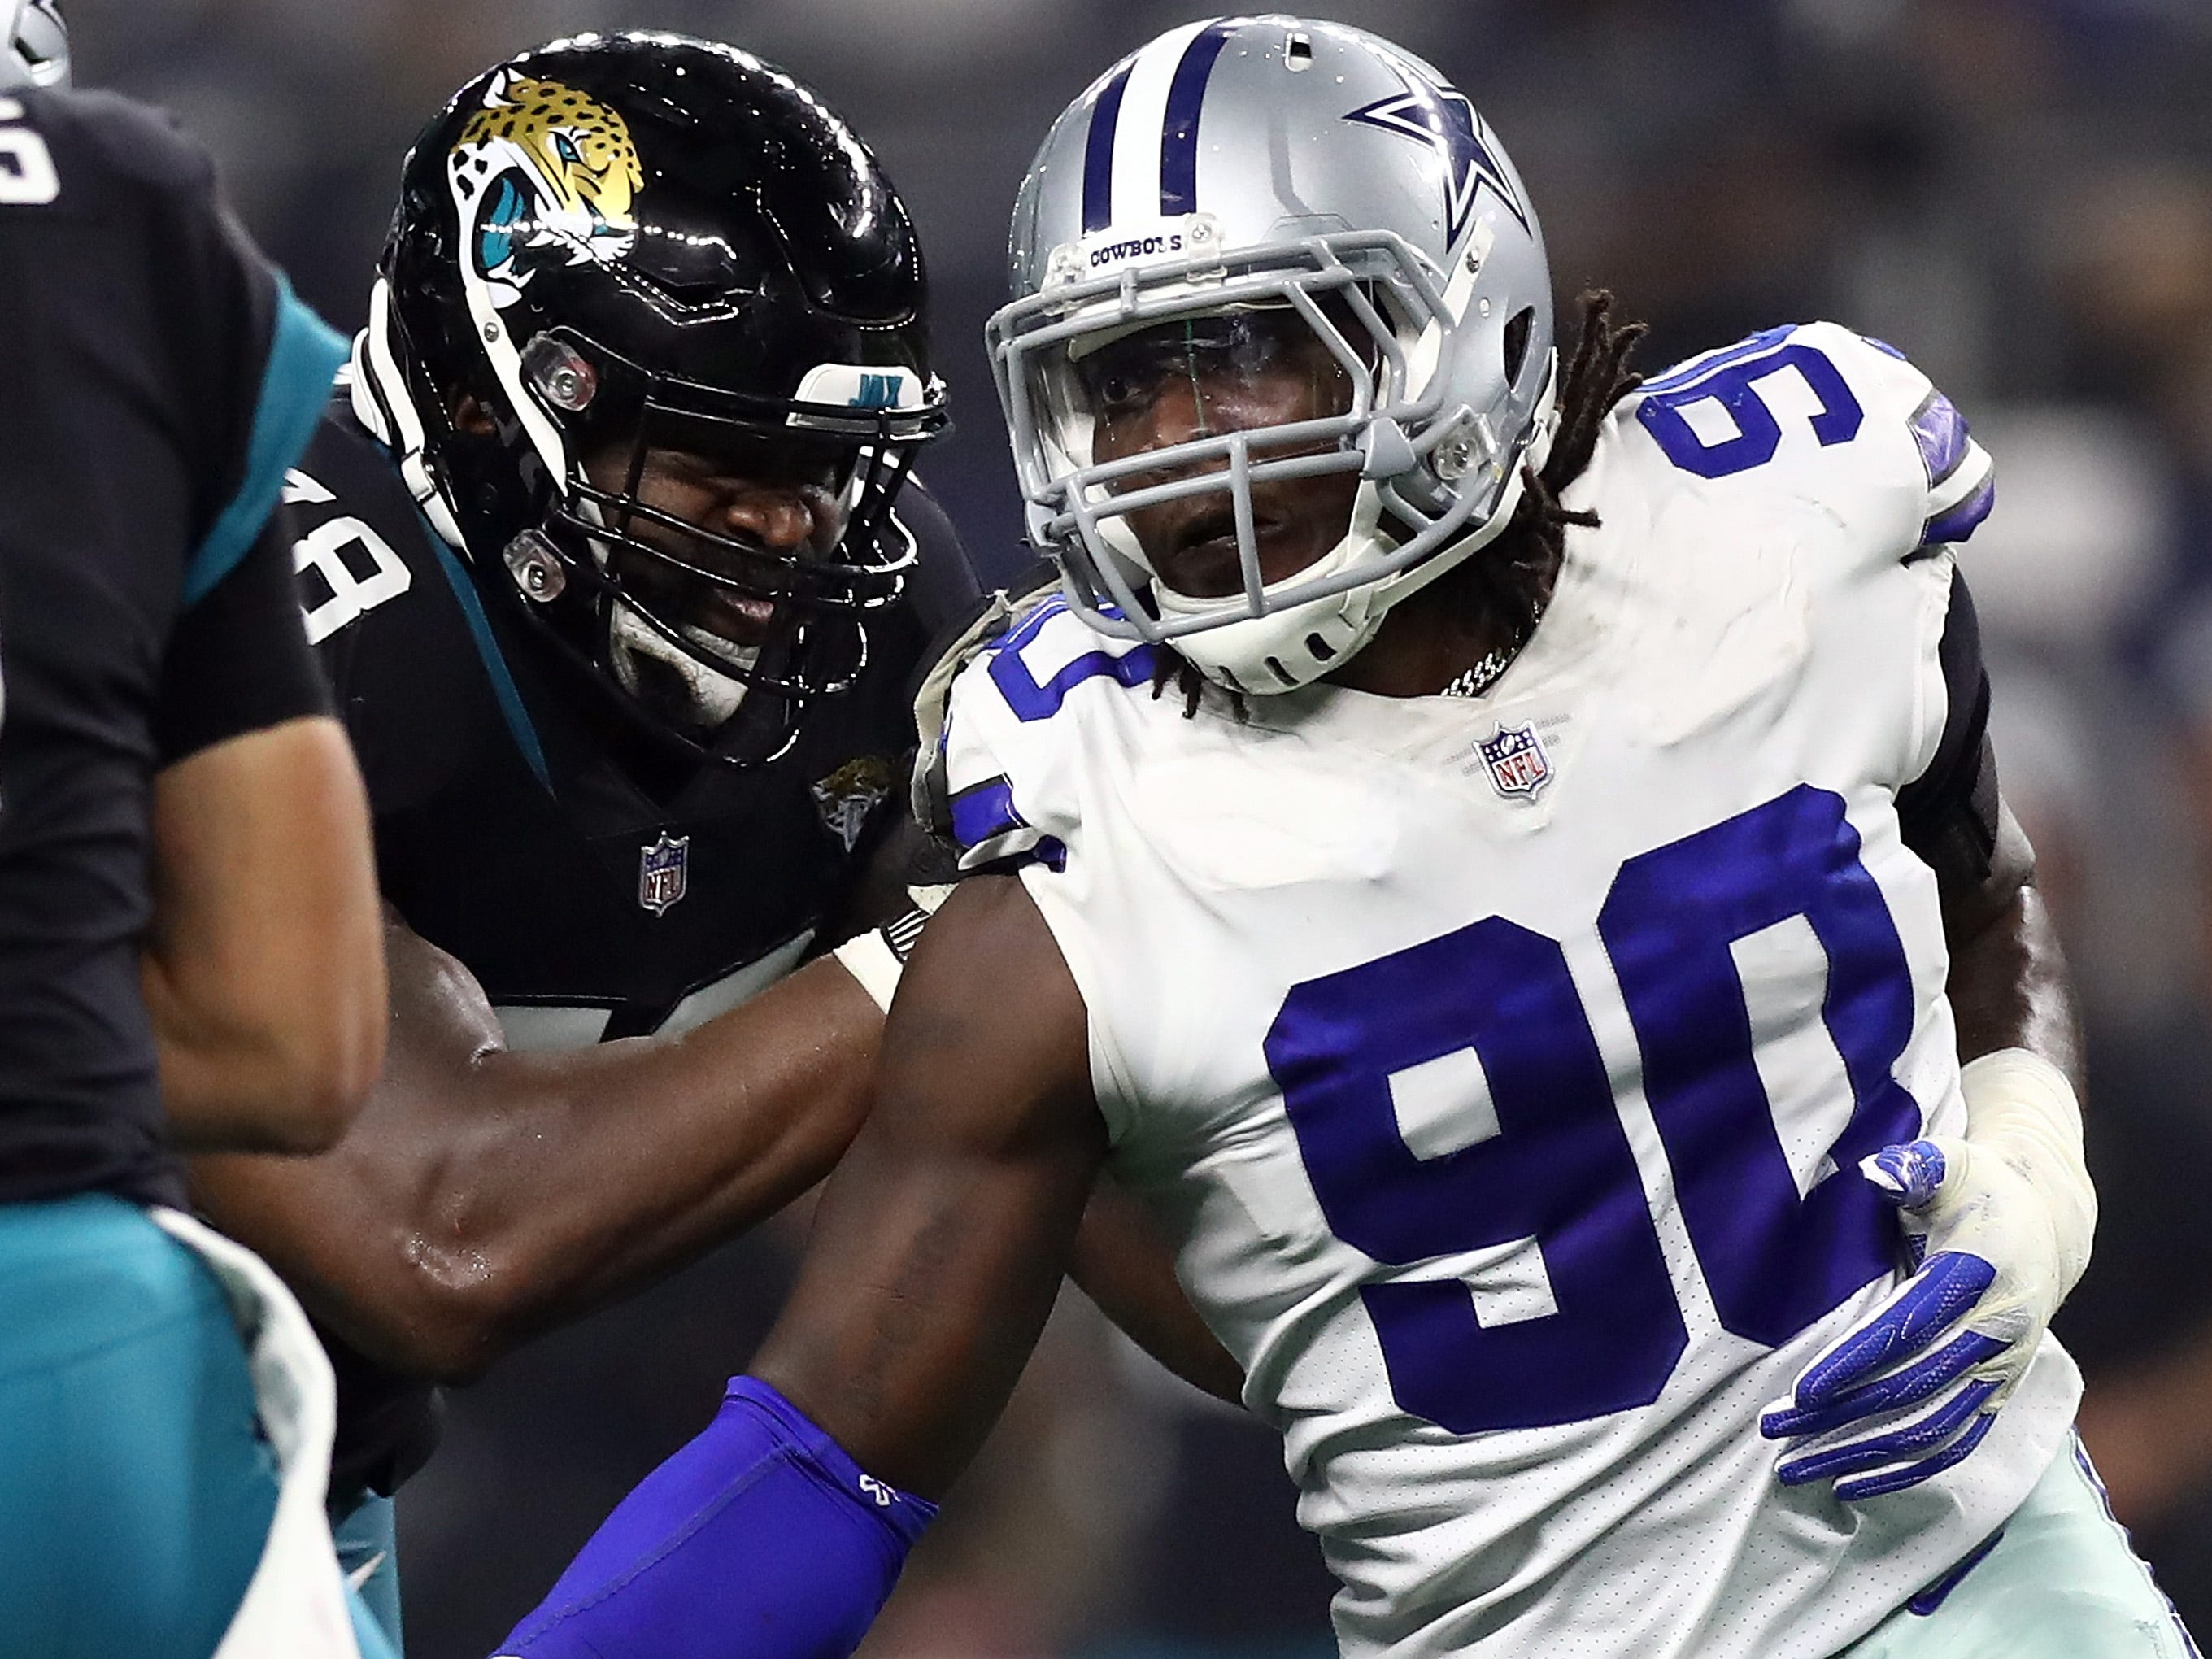 DeMarcus Lawrence, DE, Dallas: The 26-year-old edge defender is the total package of size, length and pass-rushing ability. He's recorded 25 sacks over the past two seasons, while generating 63 total pressures in 2018. He played on the franchise tag last season, and Dallas is expected to pull out all the stops to lock him up long-term.